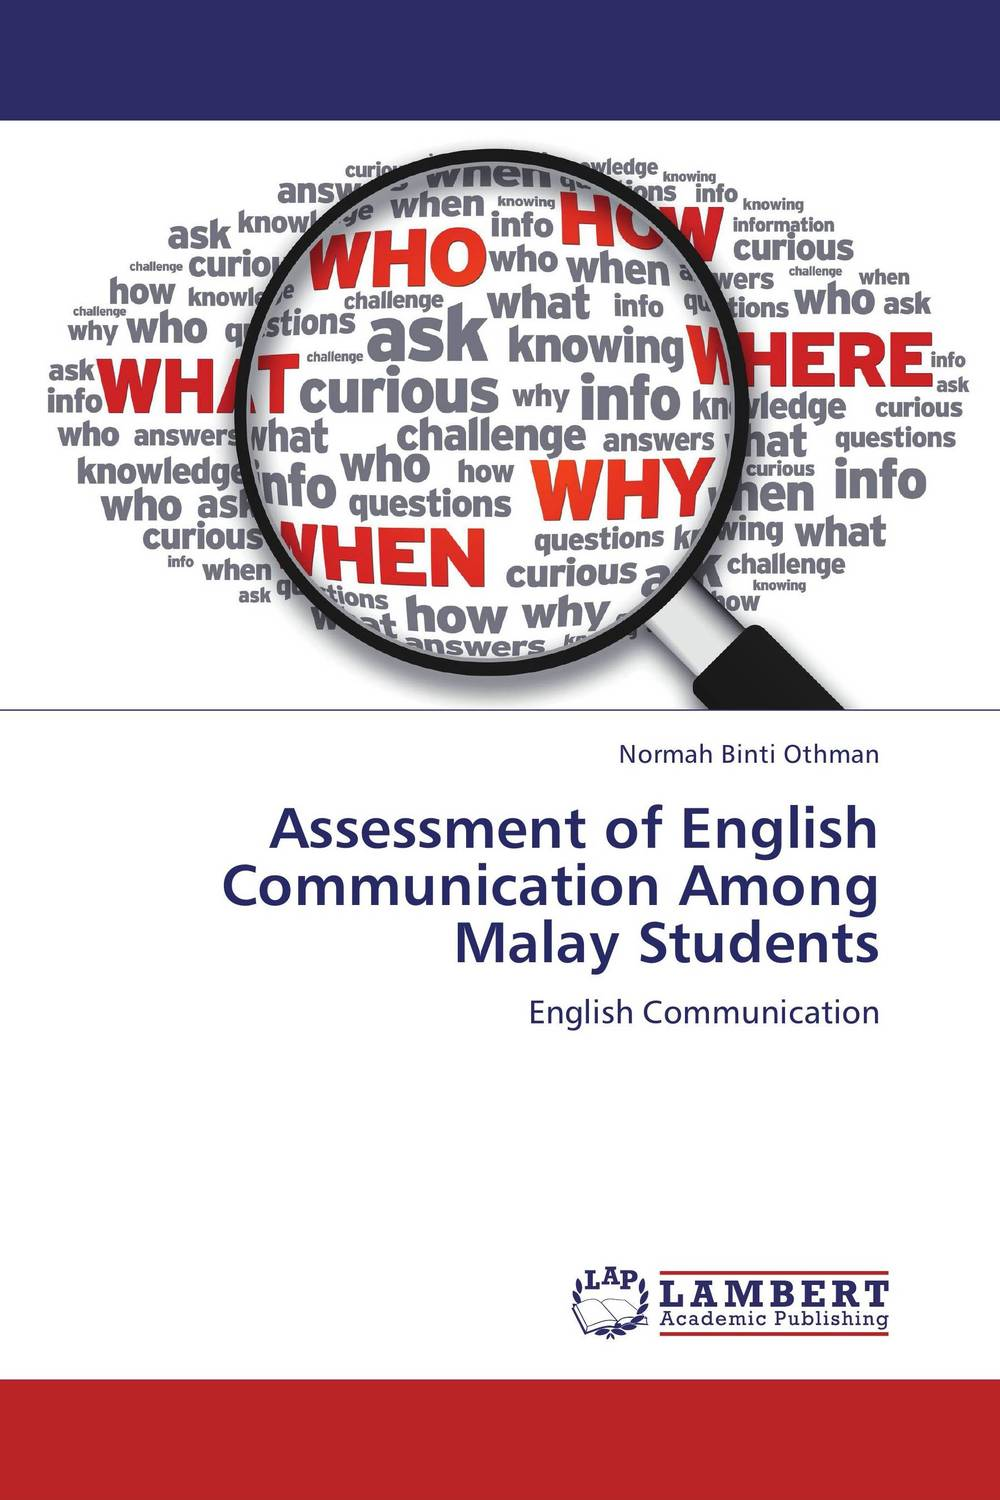 Assessment of English Communication Among Malay Students